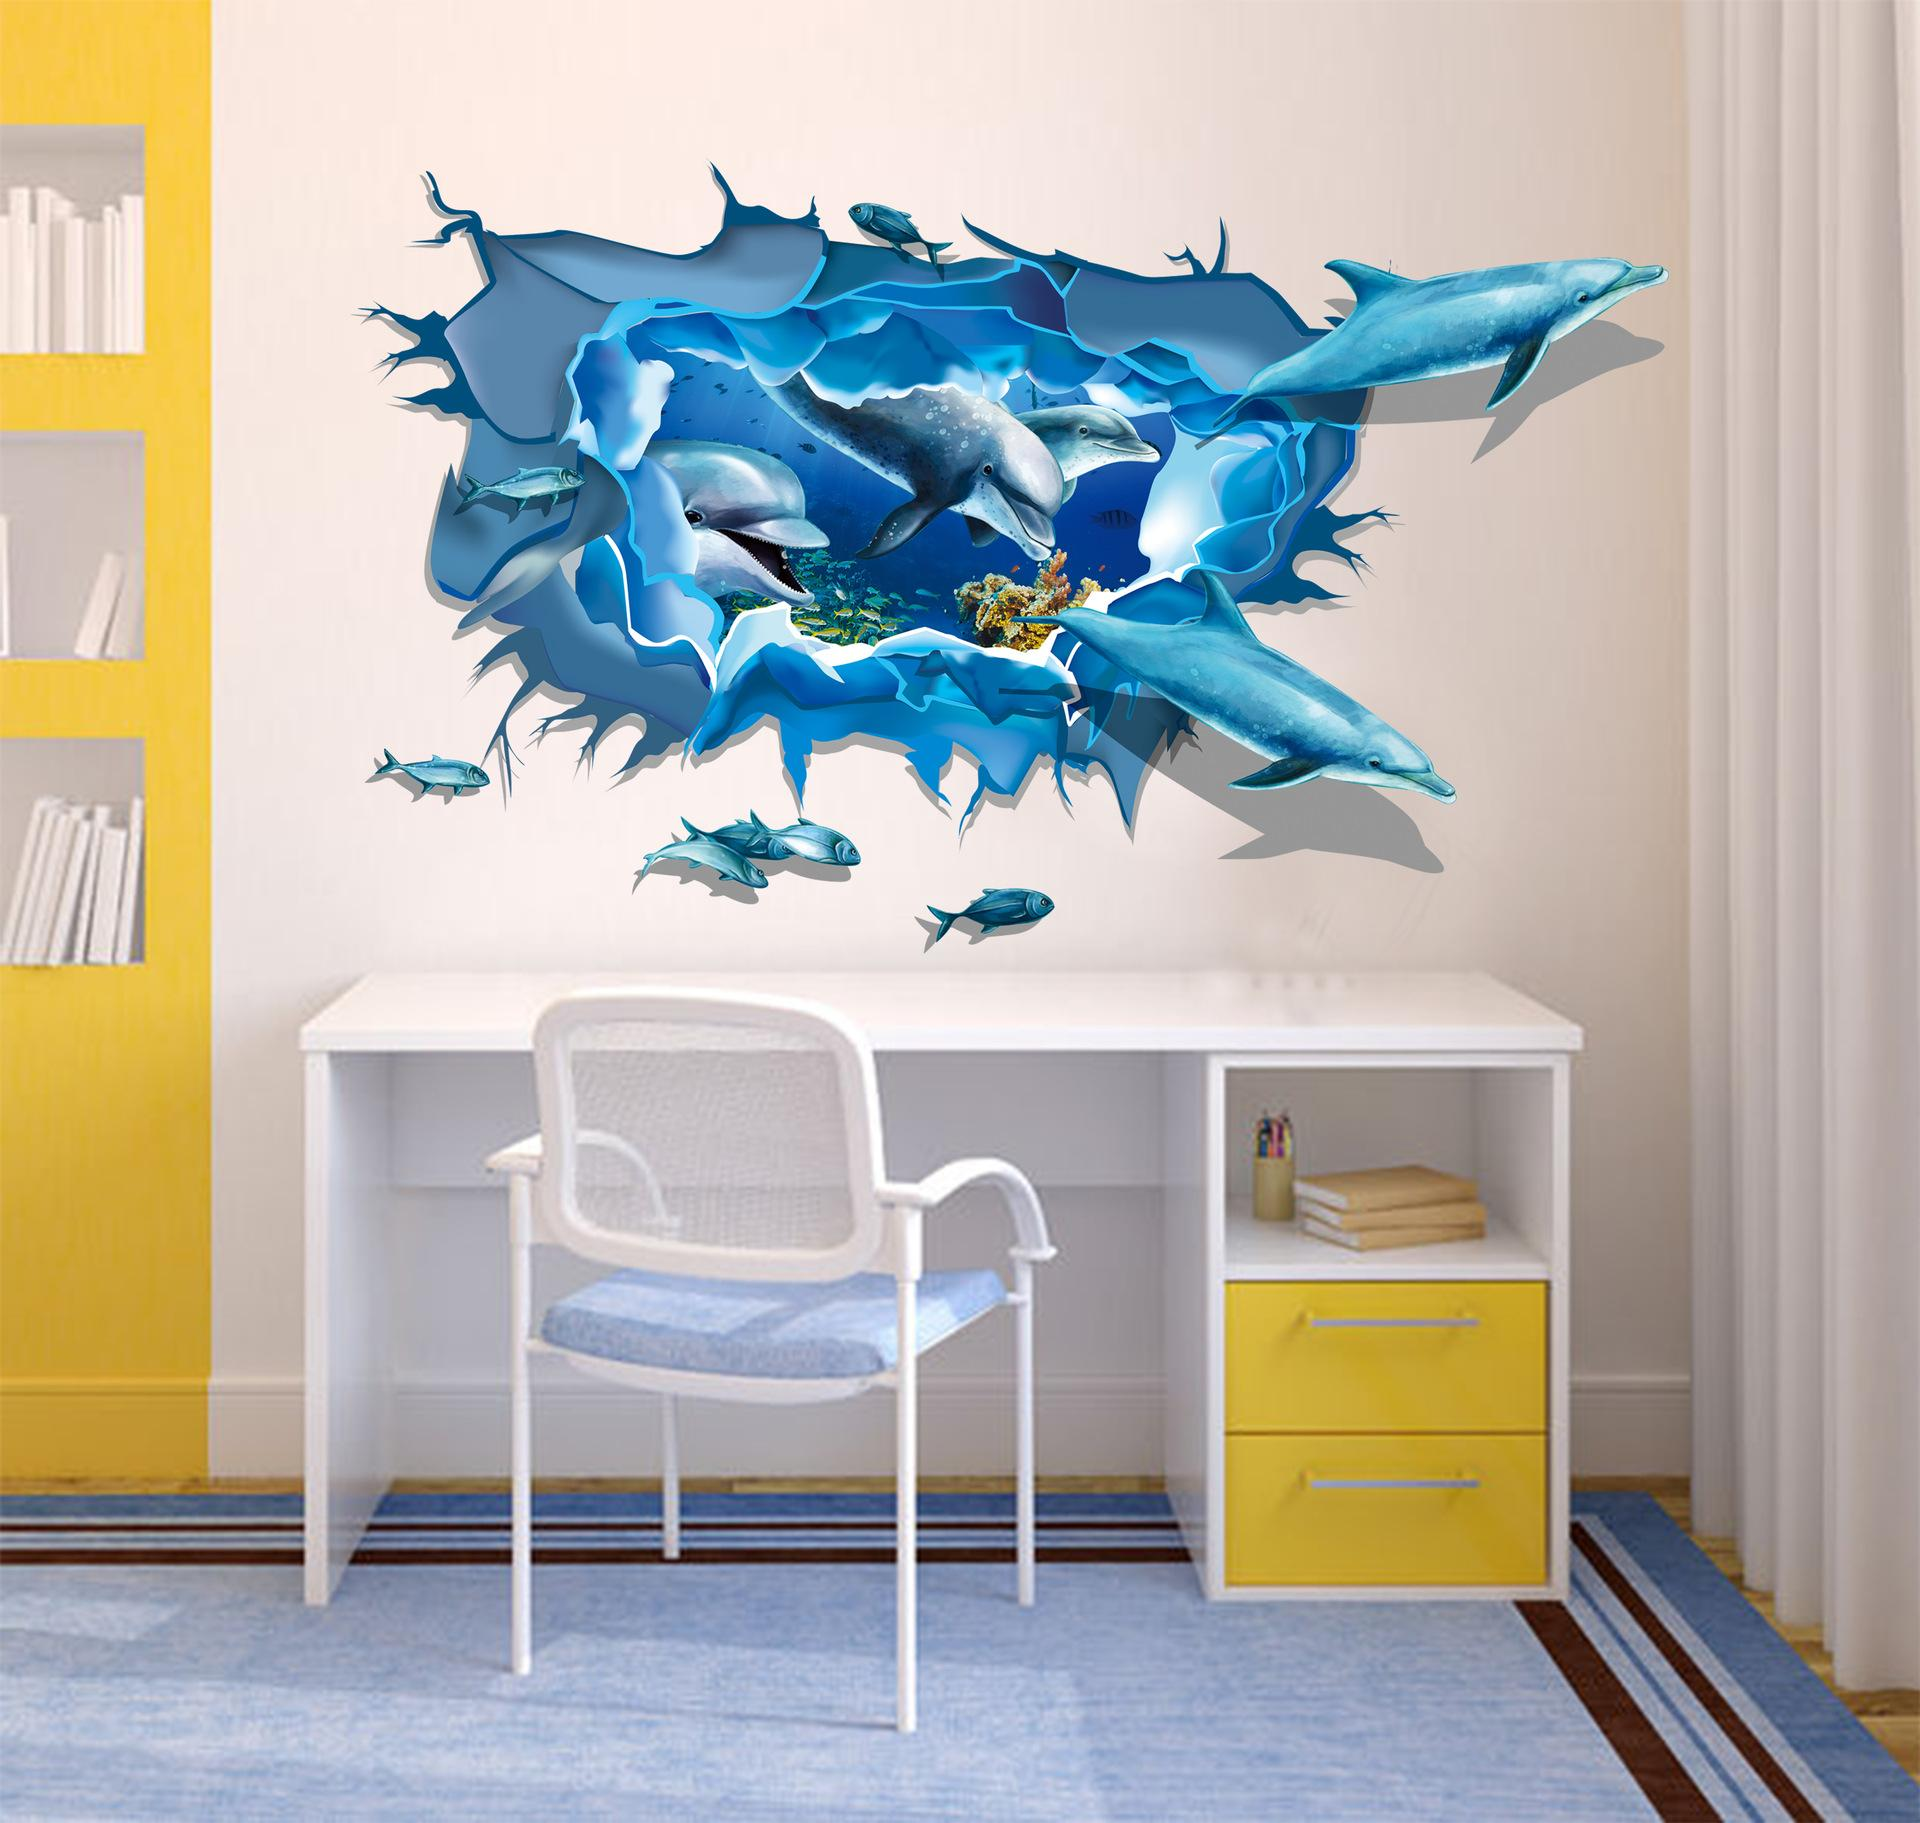 ... 3D Sailing Broken Wall Mural Removable Wall Sticker Art Vinyl Decal  Room Decor ...